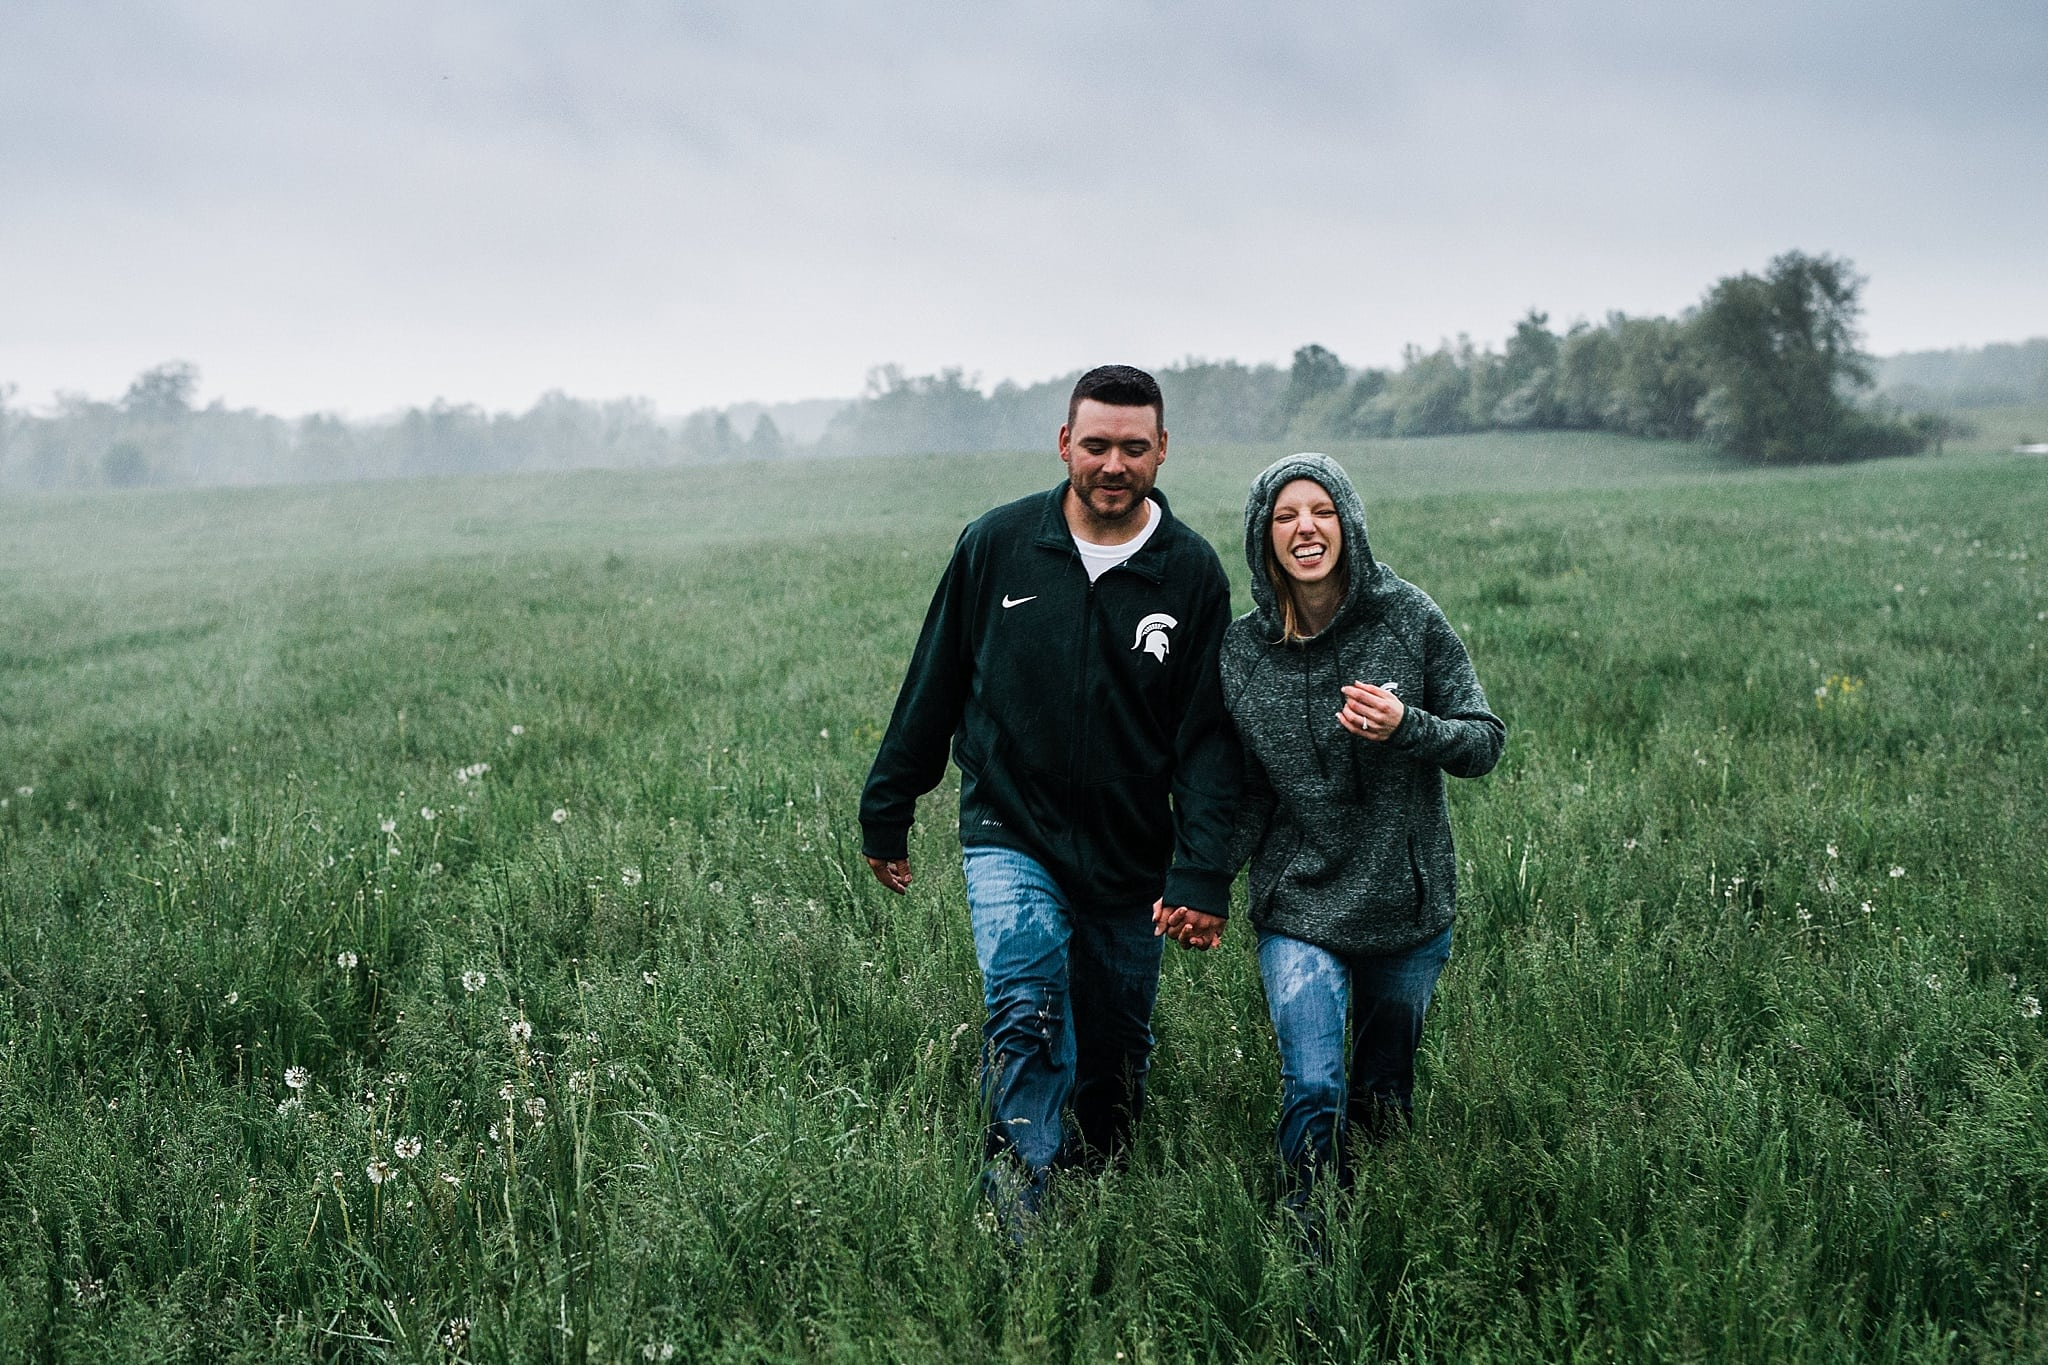 Engagement Session in the rain field mist romantic intimate michigan wedding photographer ME+HIM Photography Detroit Ann Arbor Grand Rapids